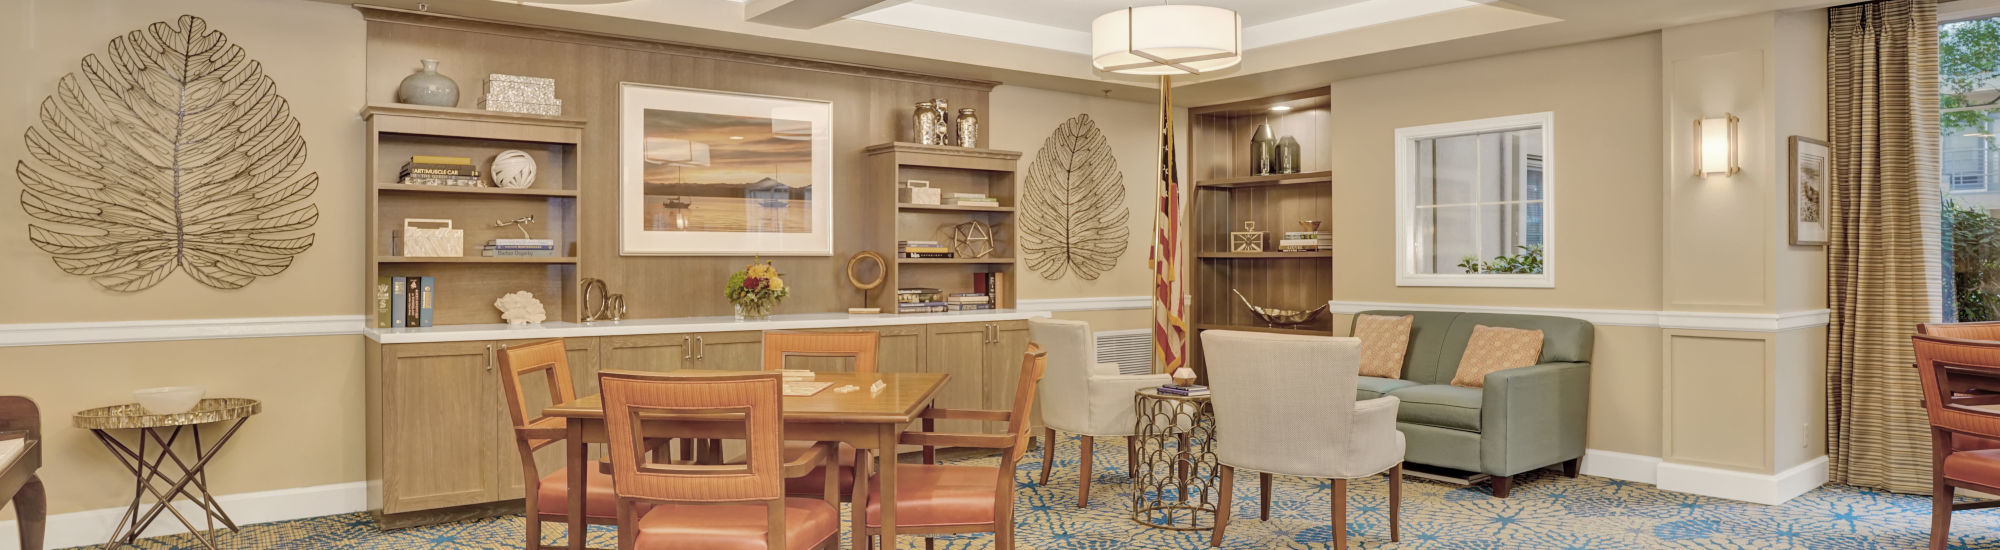 Photo gallery at Island House Assisted Living in Mercer Island, Washington